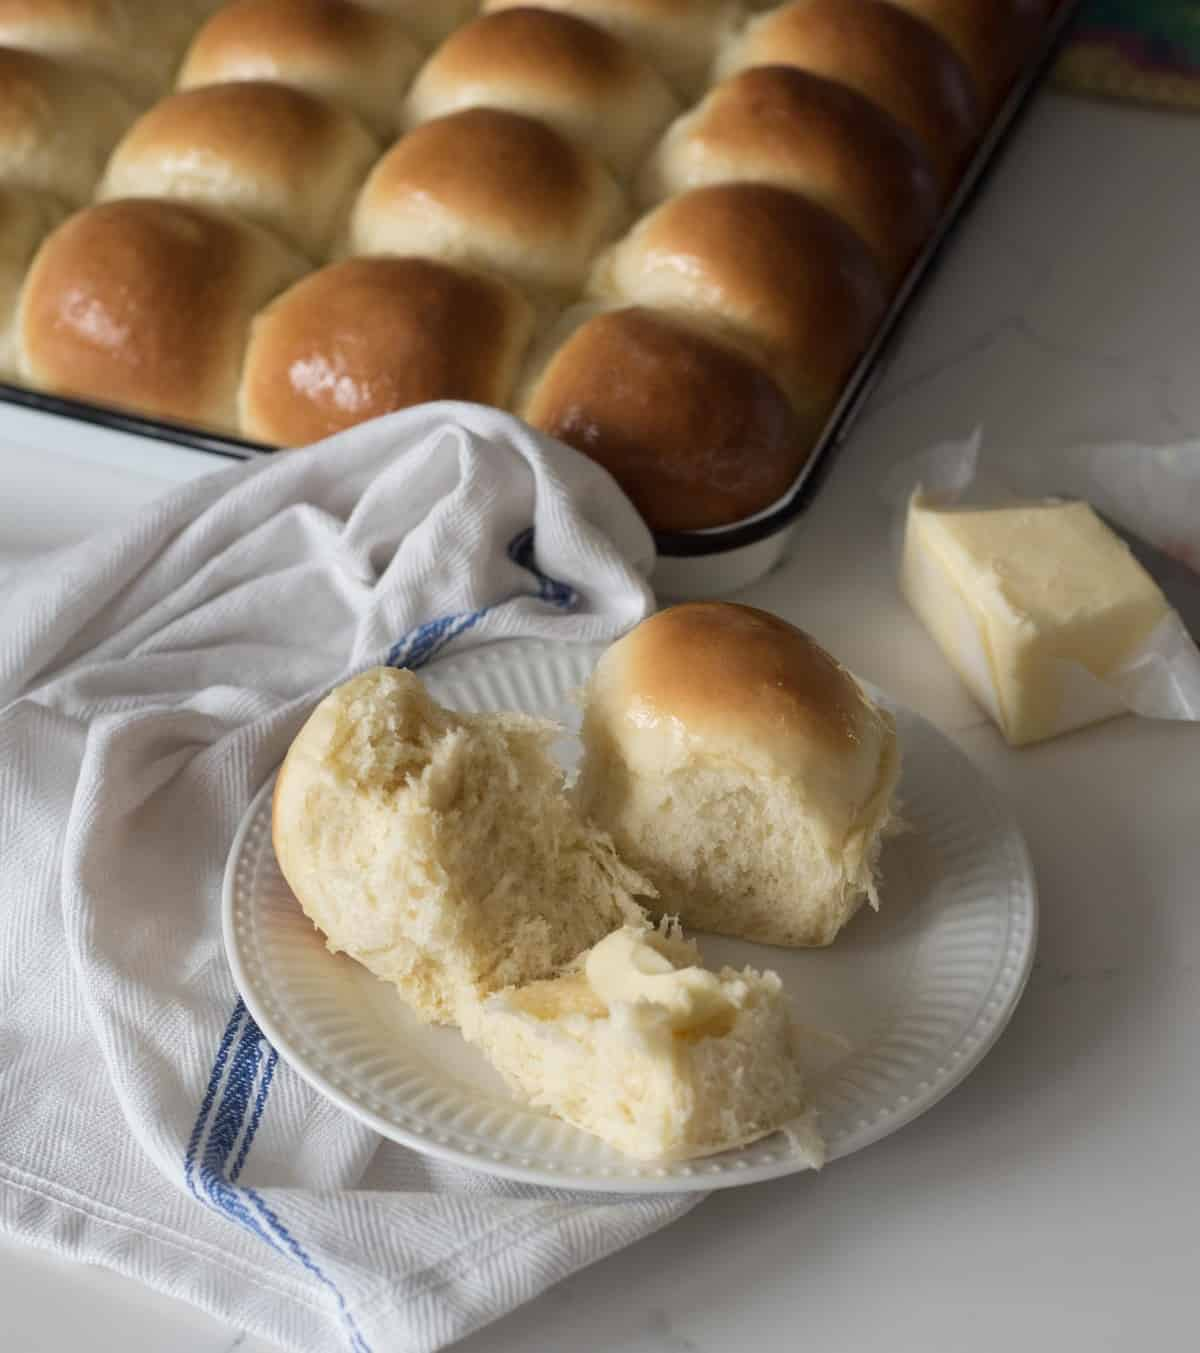 Golden dinner rolls in the pan with two removed onto a plate, broken with butter inside and waiting to be eaten.